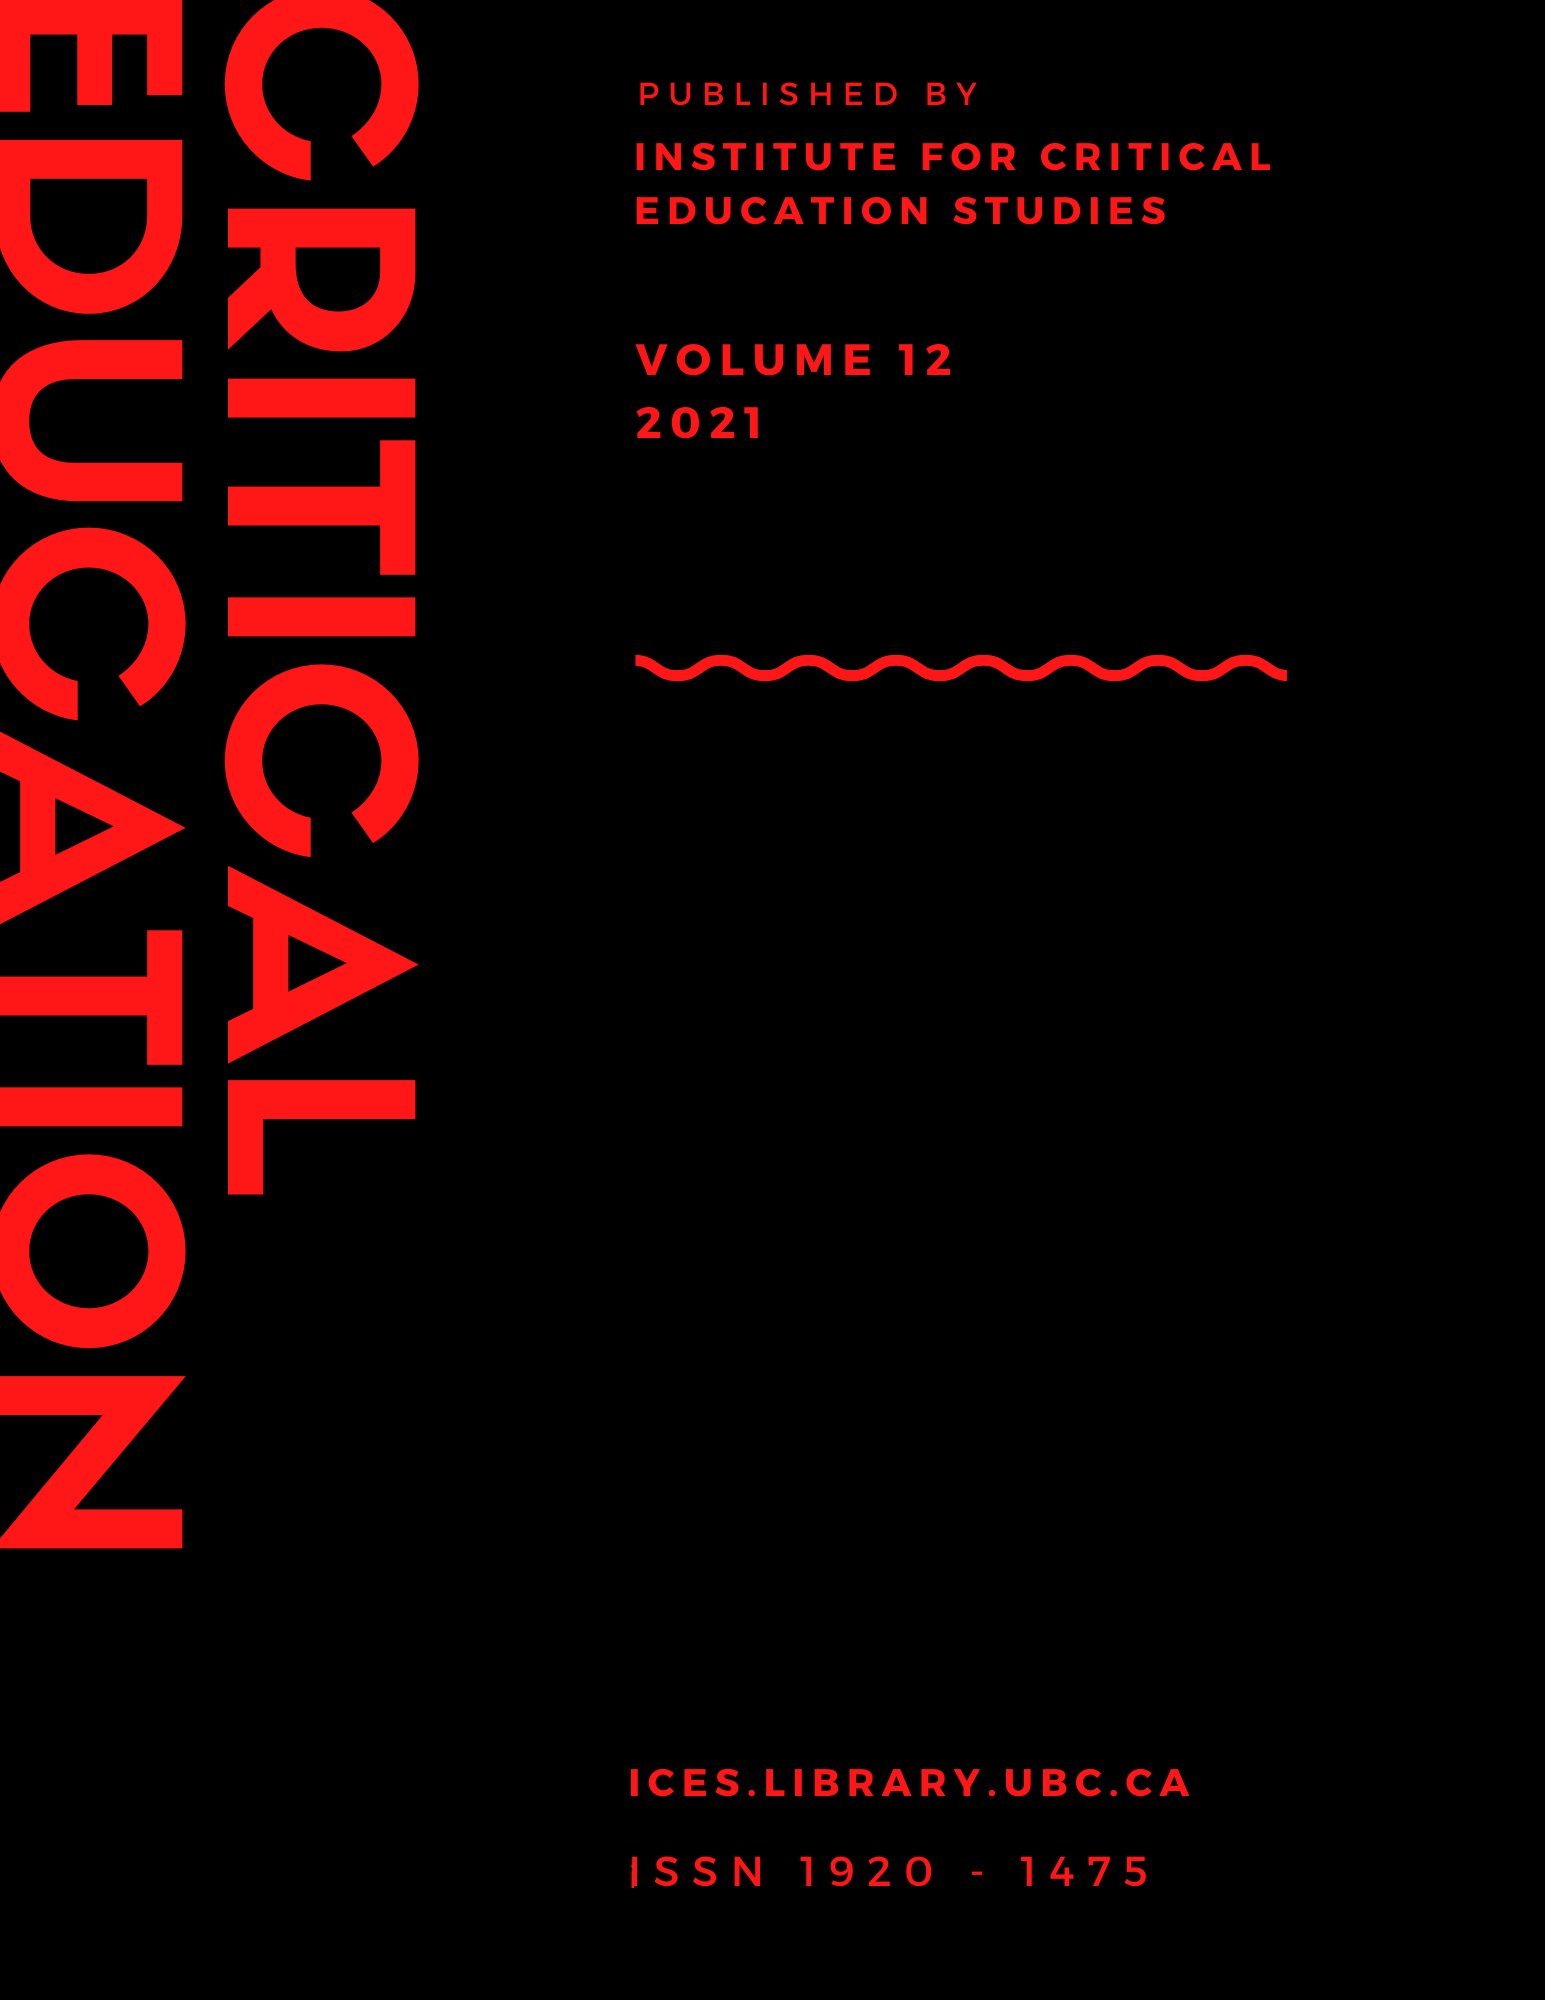 Critical Education Volume 12 Cover Image